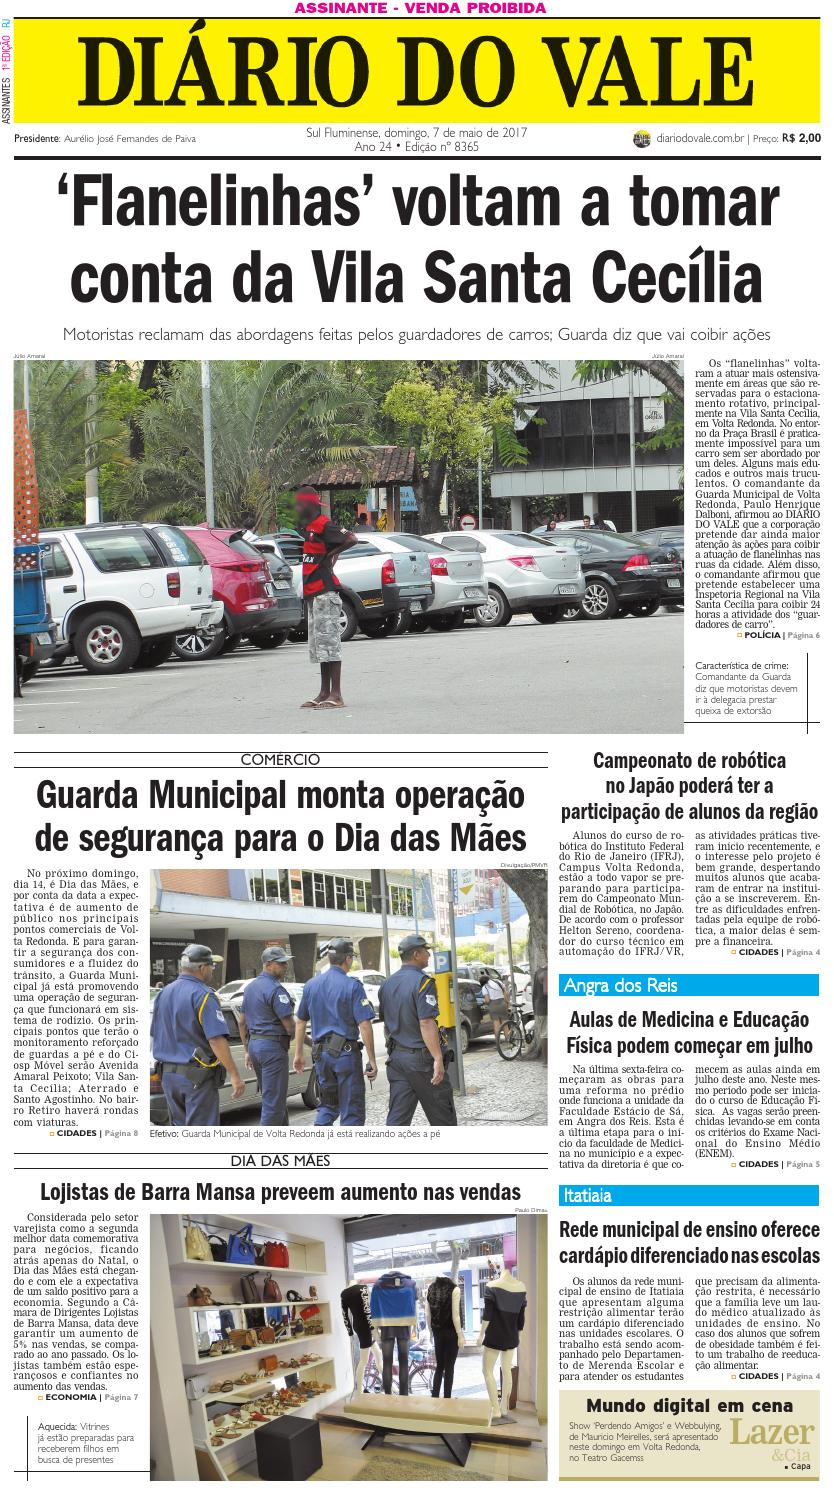 503456b46eef0 8365 Diario do Vale domingo 07 05 2017 by Diário do Vale - issuu